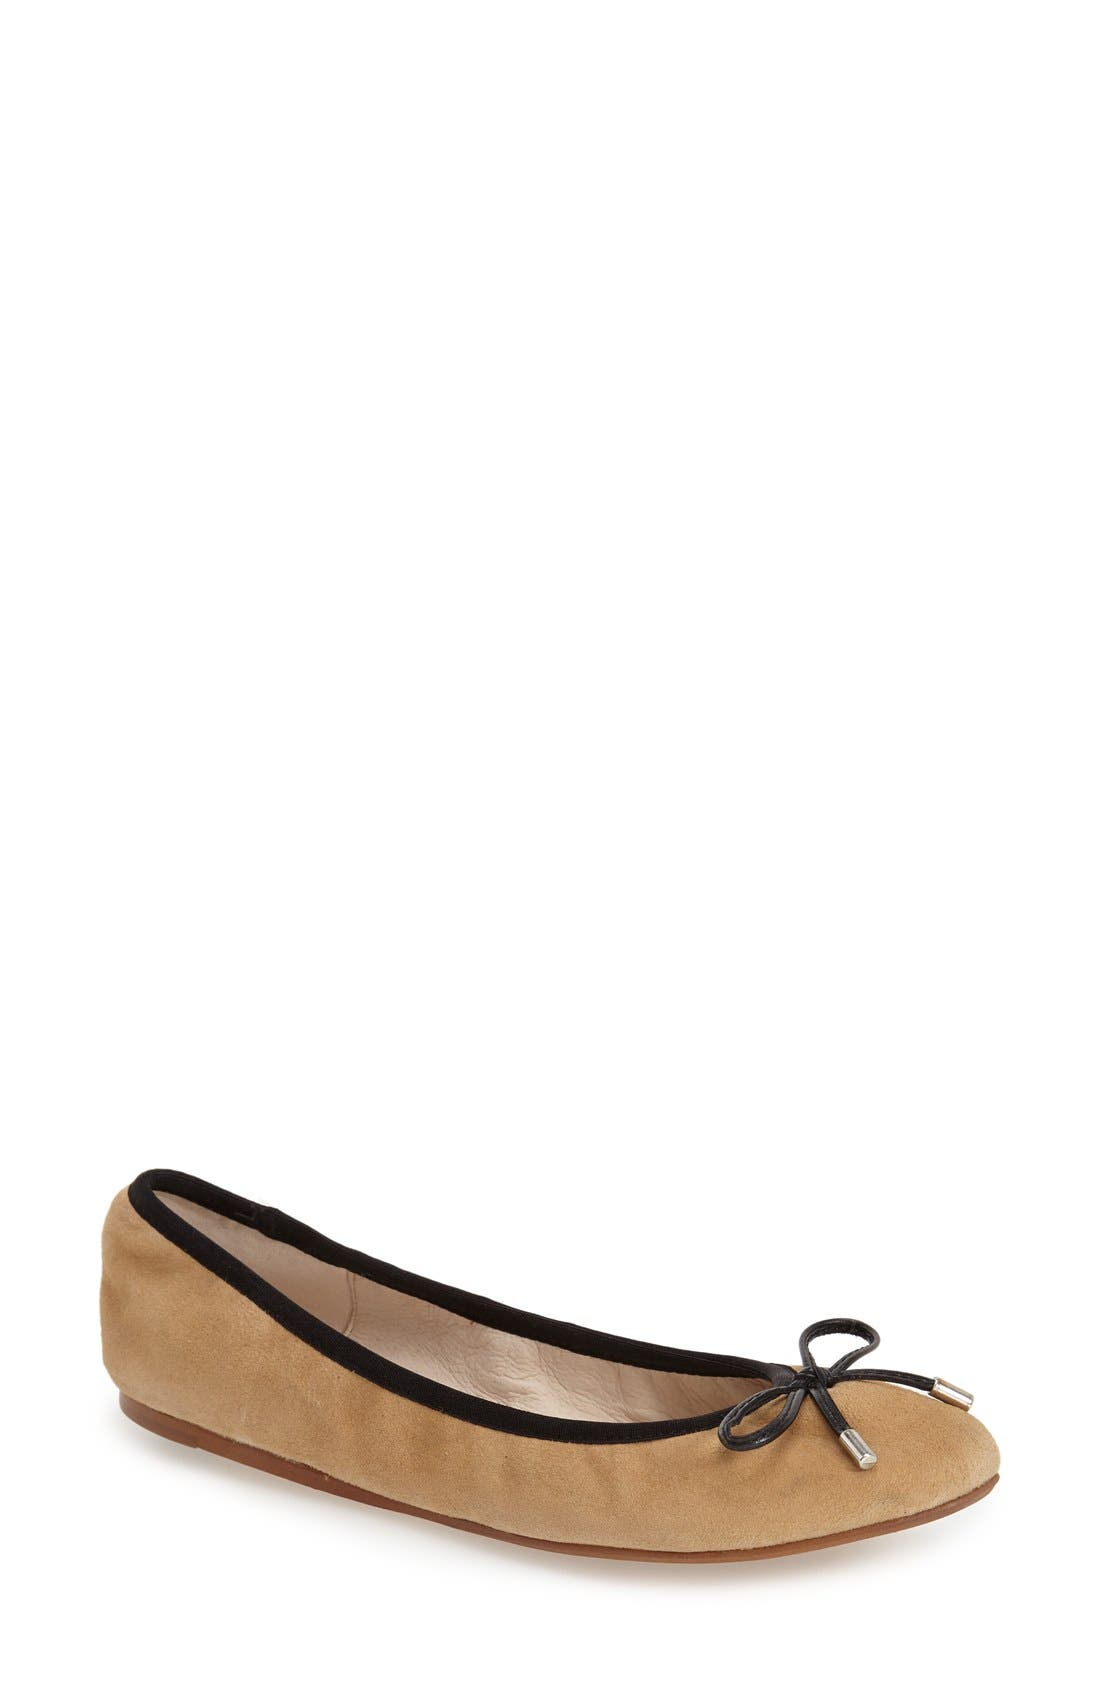 Kenneth Cole New York 'Saturn' Ballet Flat (Women)